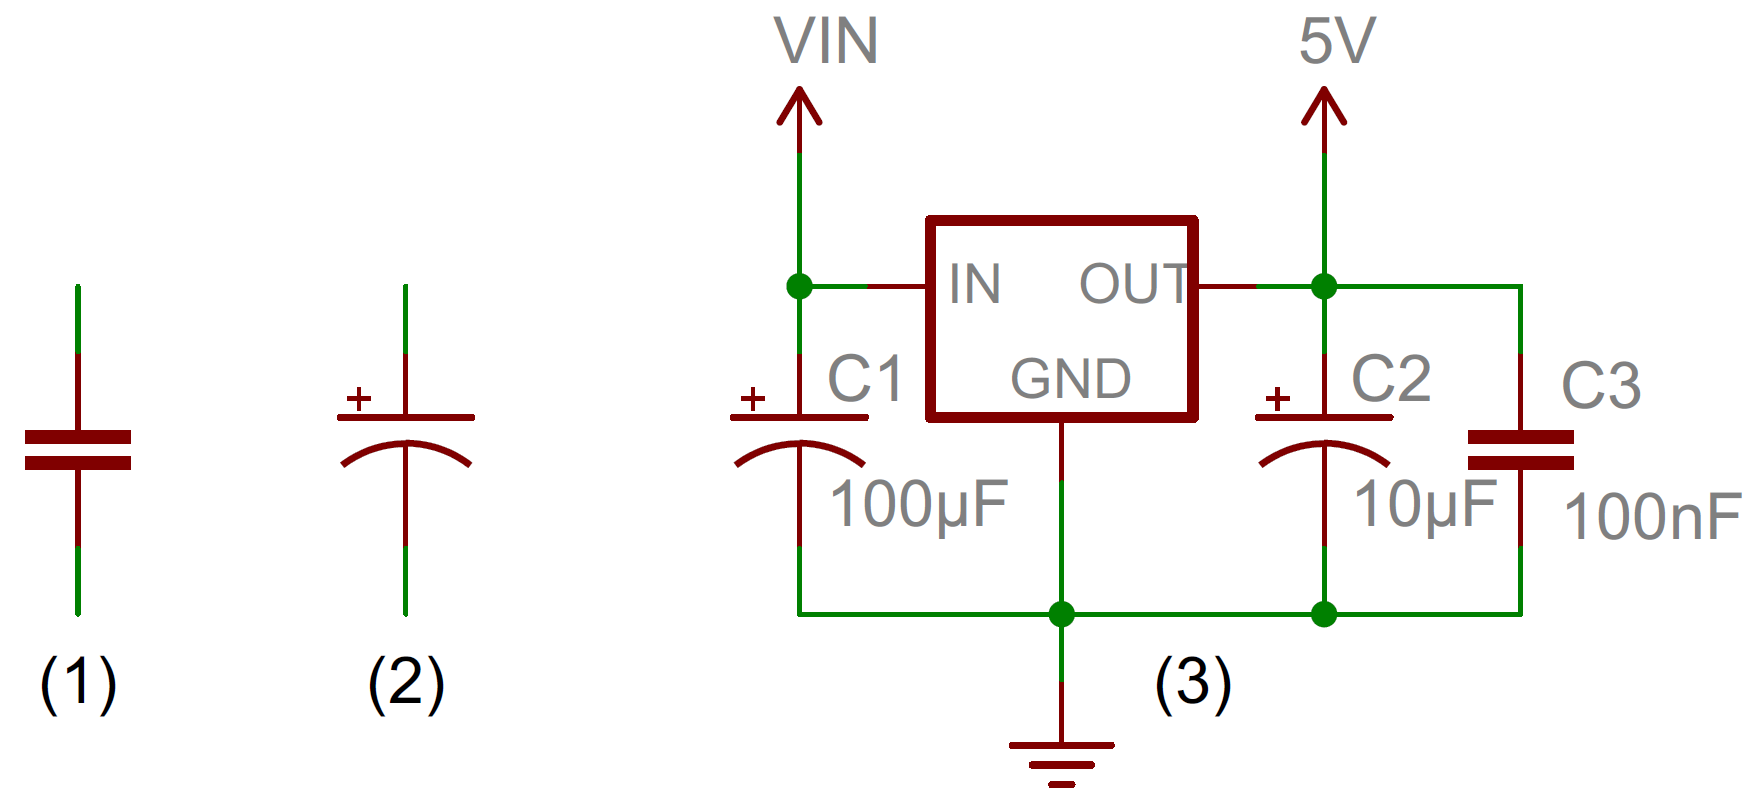 Capacitors Example Ac Transistor Circuit Analysis Of The Mid Frequency Response Capacitor Symbols